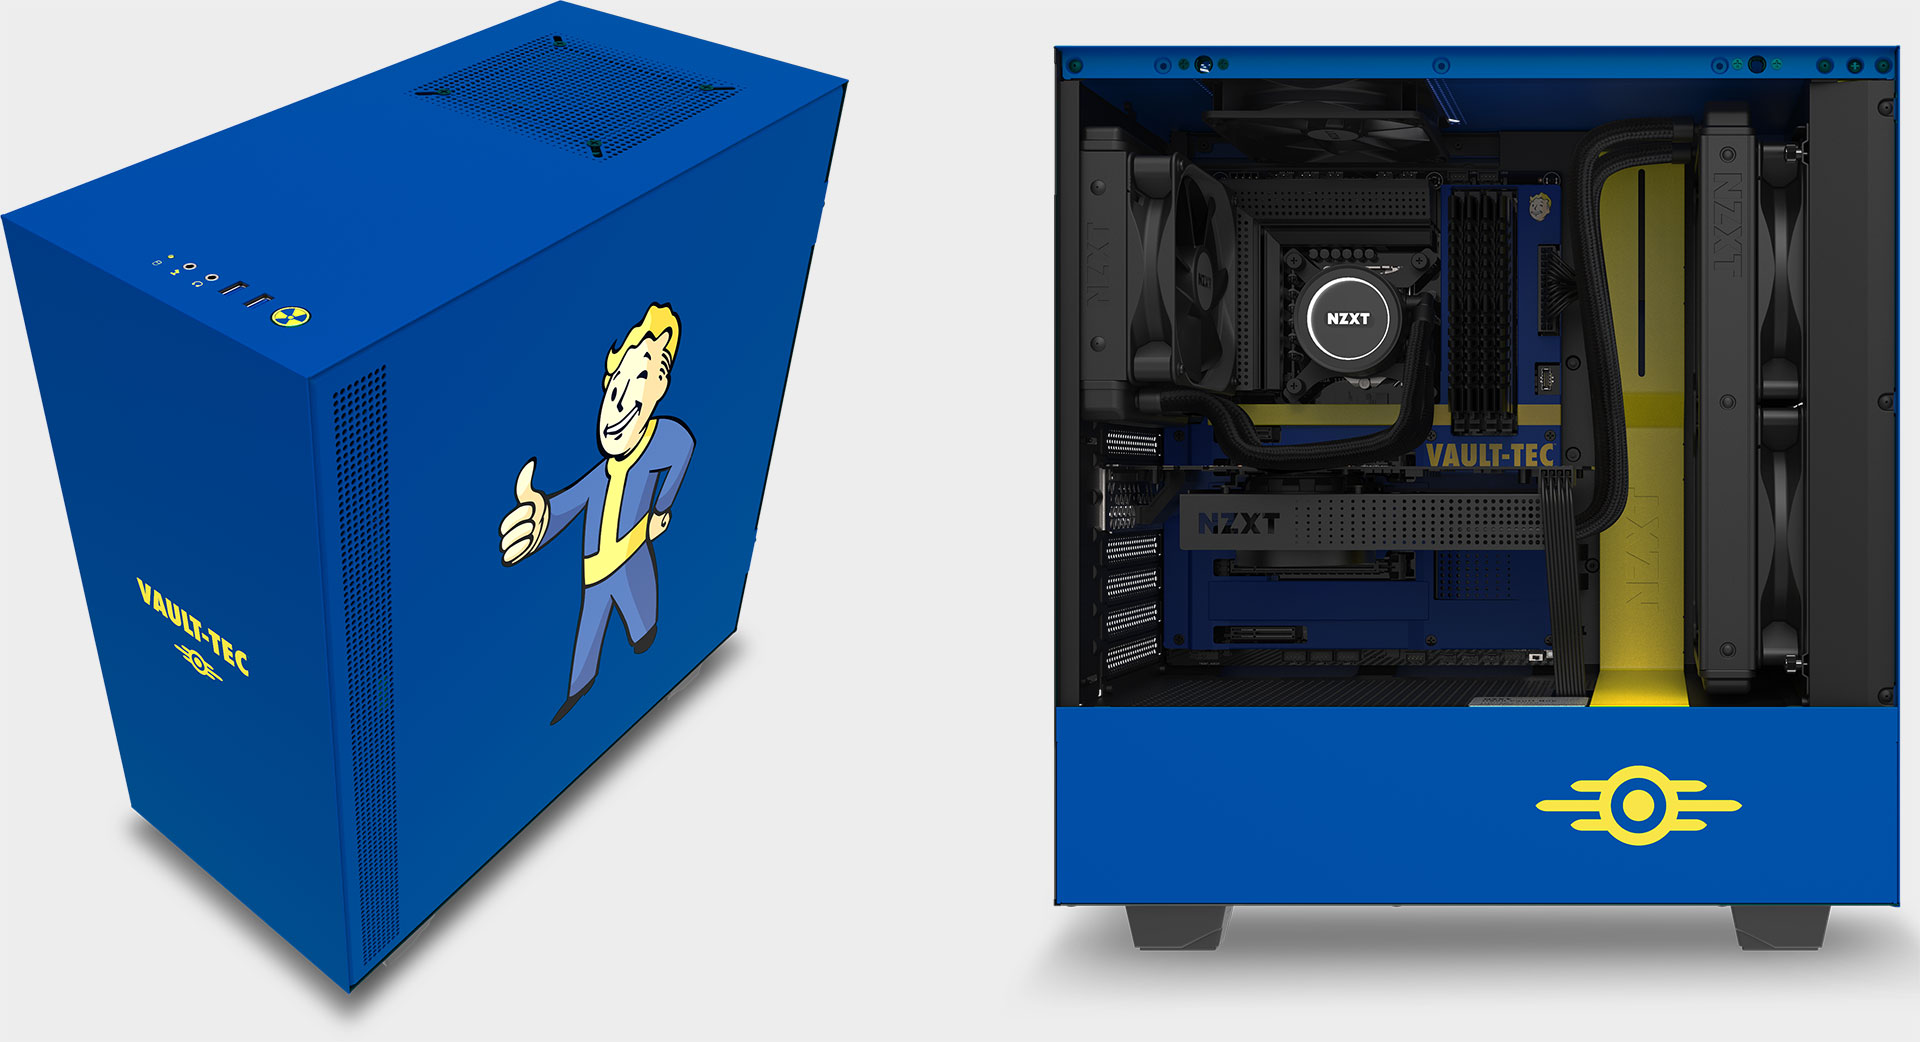 For nearly $500, you can own a Fallout-themed case and motherboard